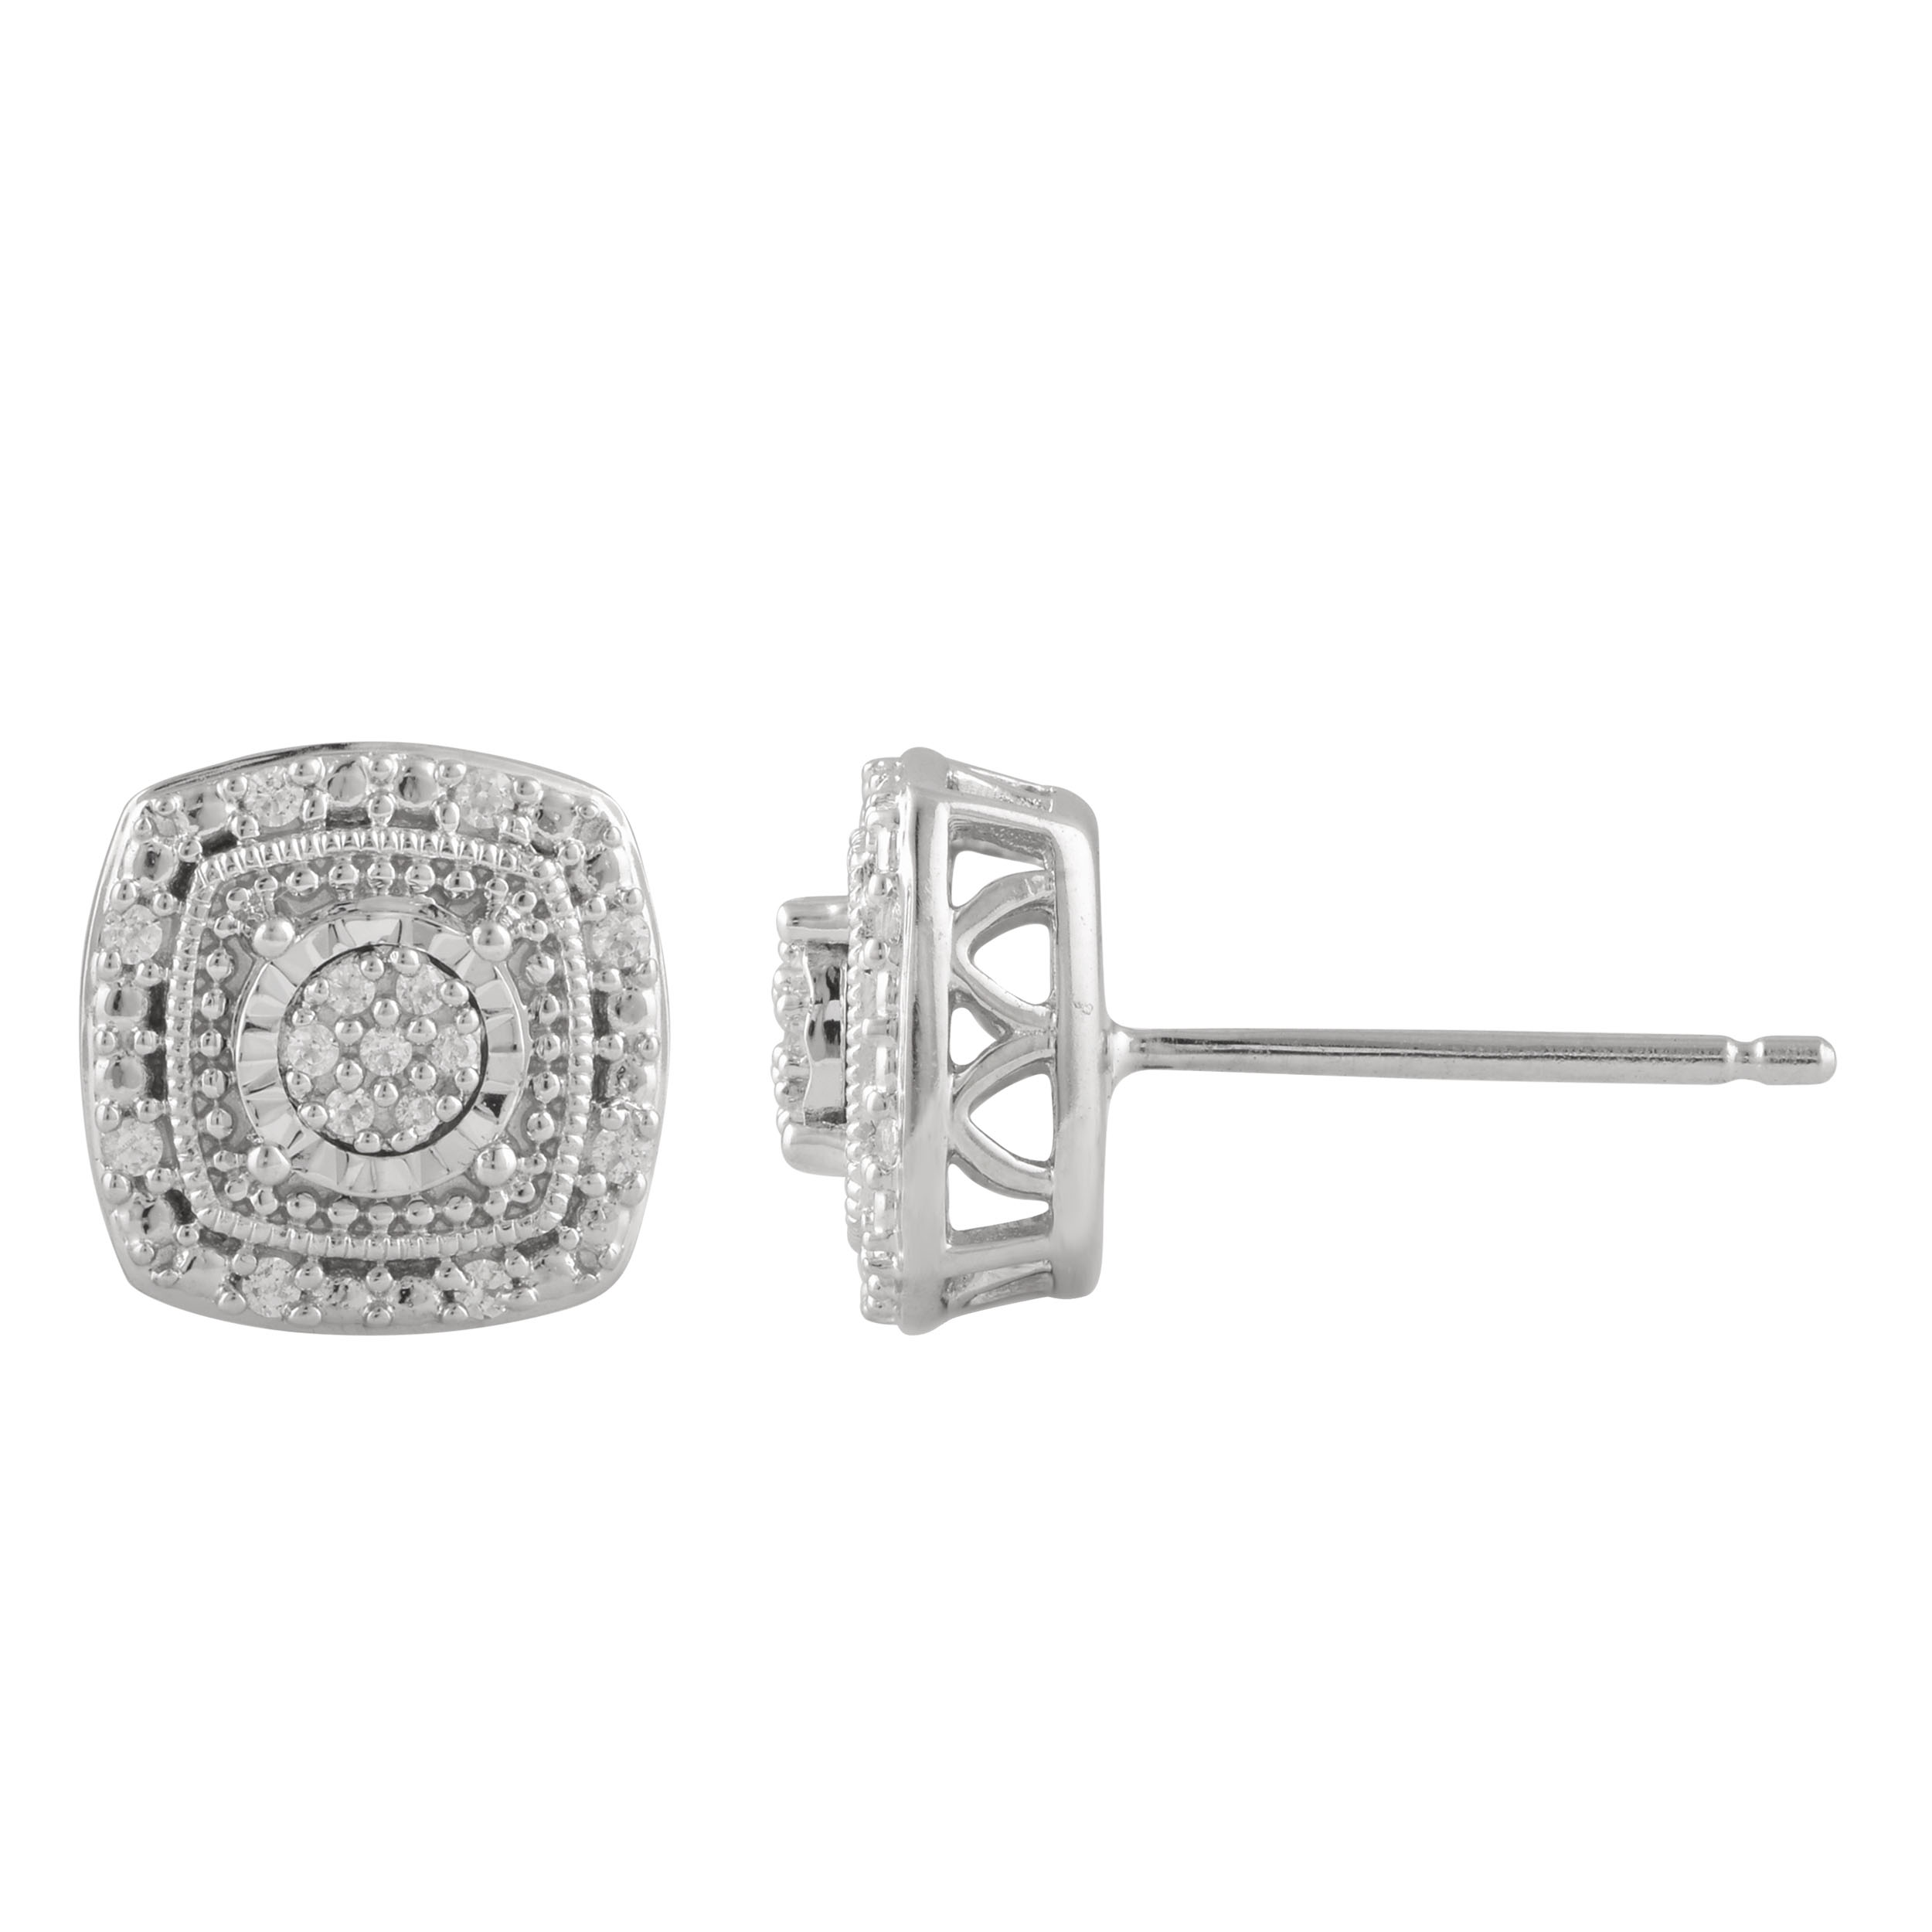 Sterling Silver Diamond Stud Earring Set with 30 Brilliant Diamonds